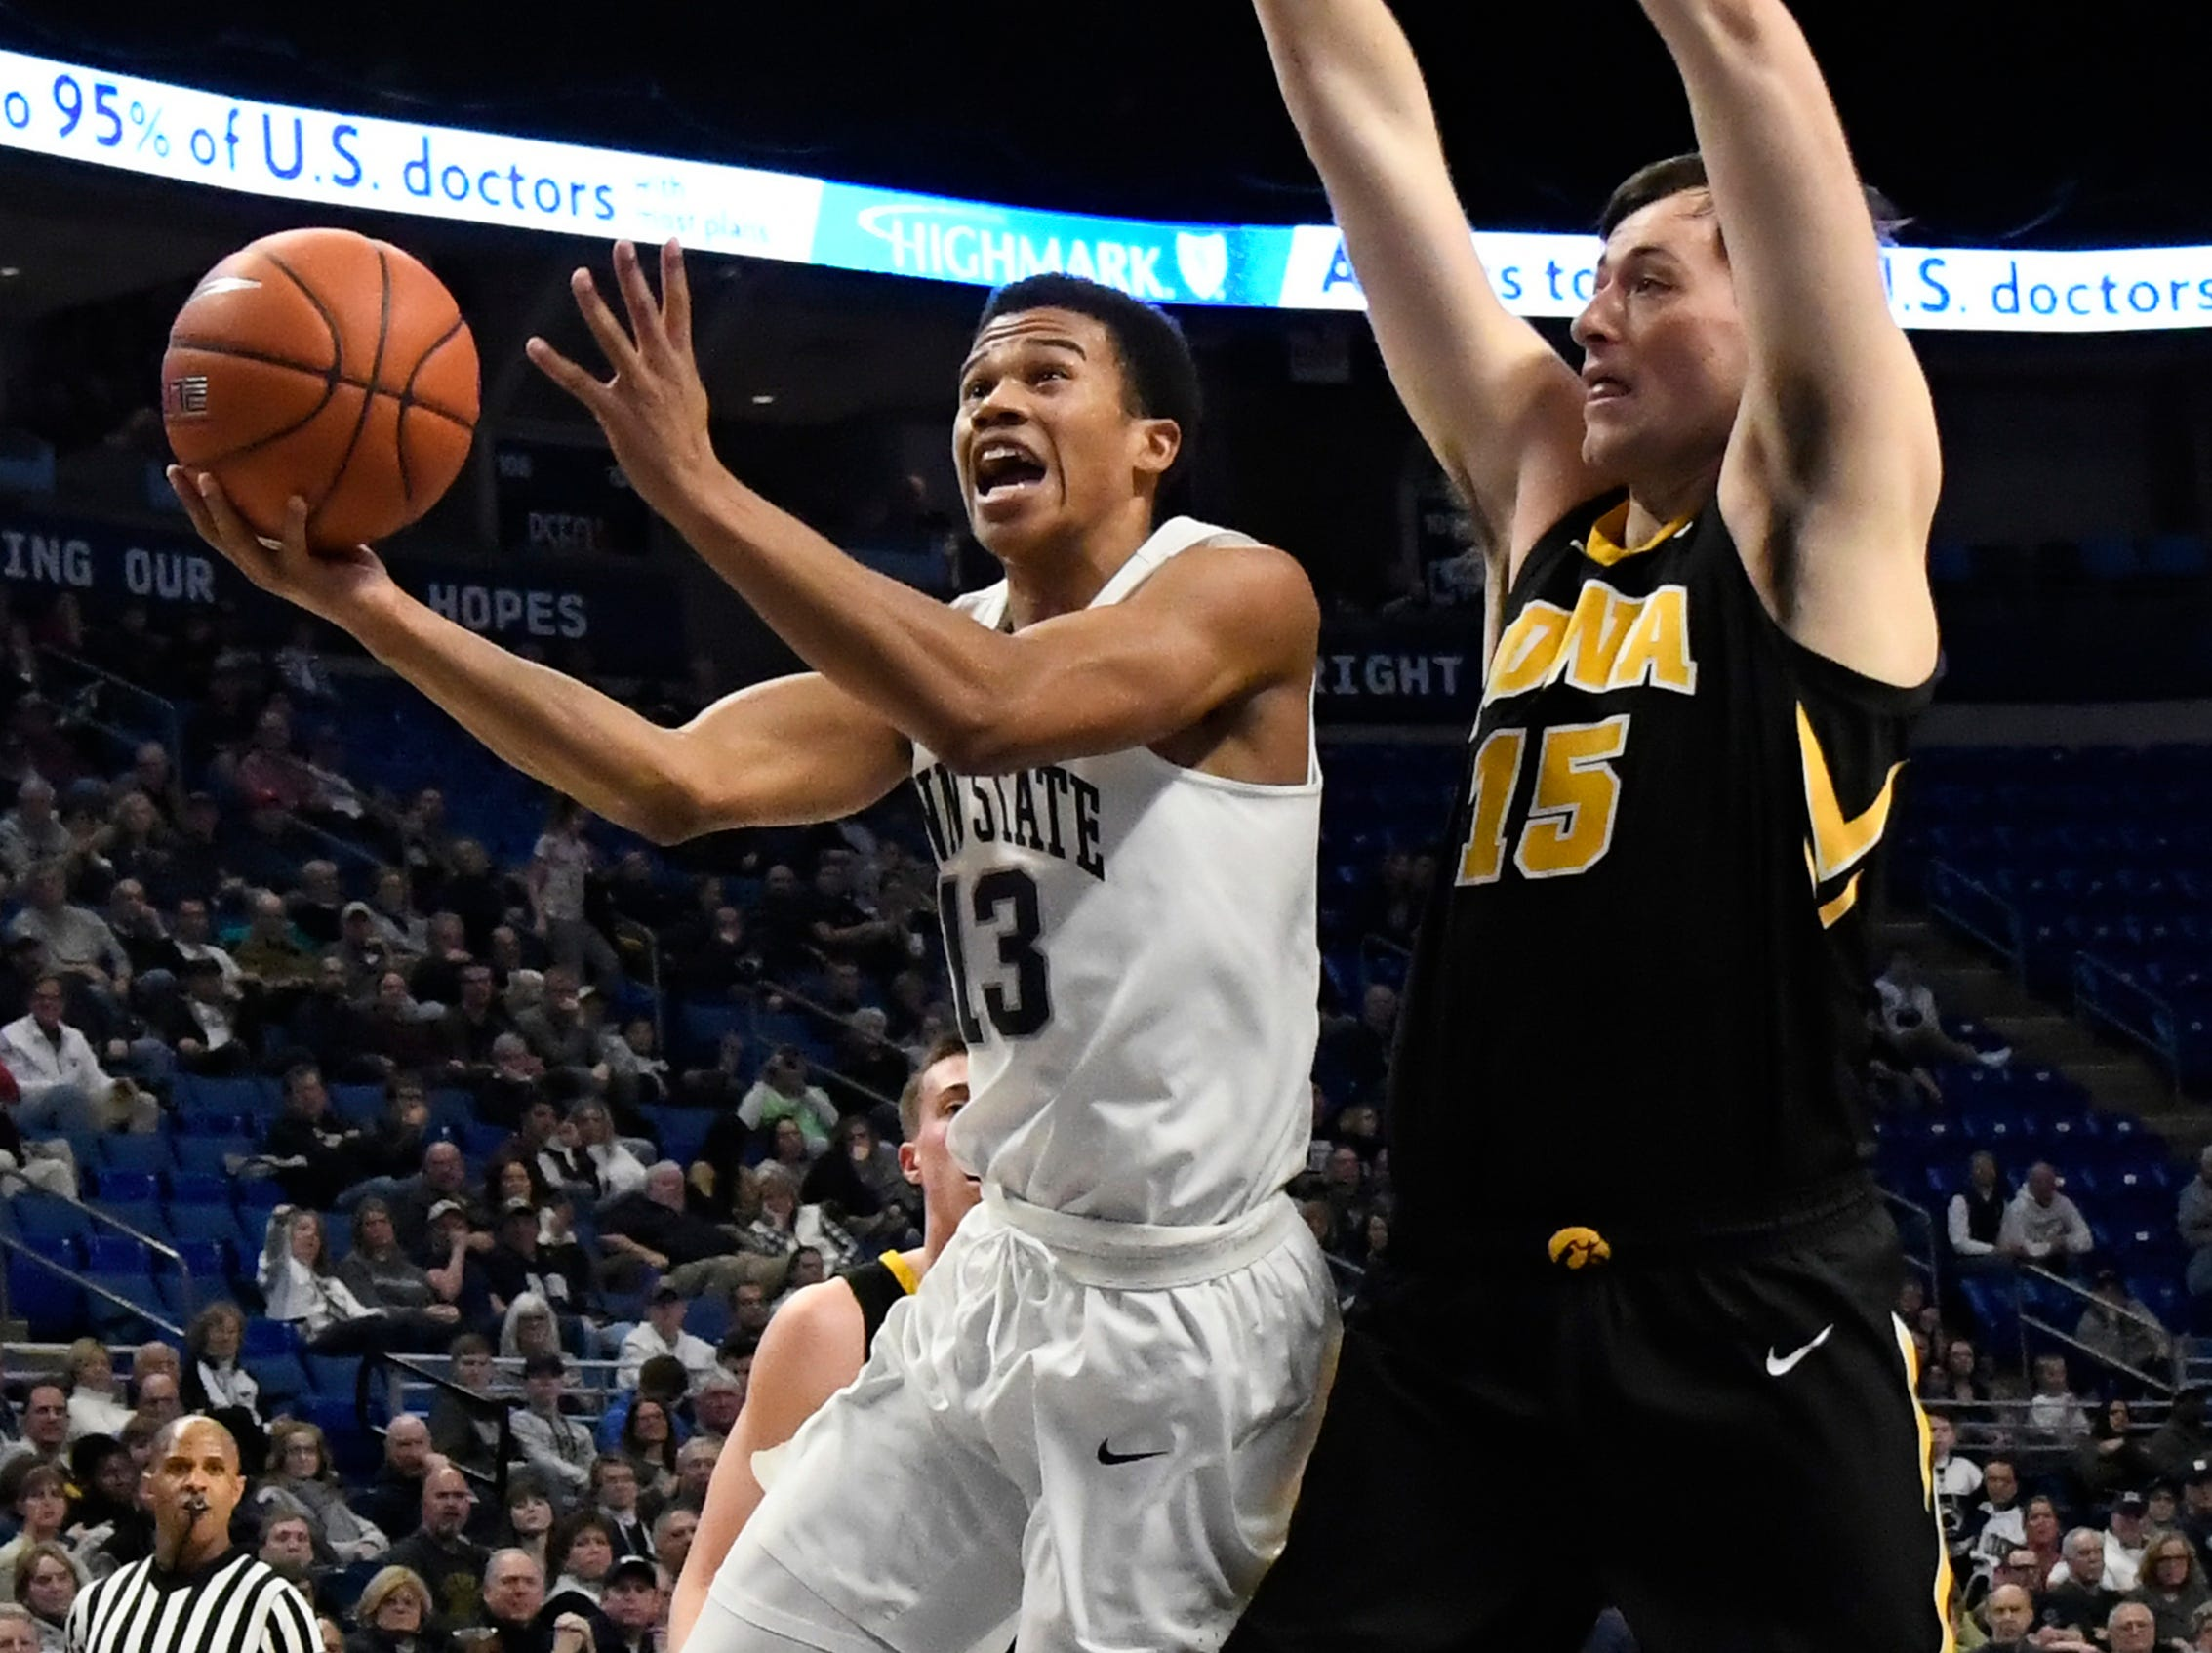 Penn State guard Rasir Bolton (13) shoots past Iowa forward Ryan Kriener (15) during the first half of an NCAA college basketball game Wednesday, Jan. 16, 2019, in State College, Pa.